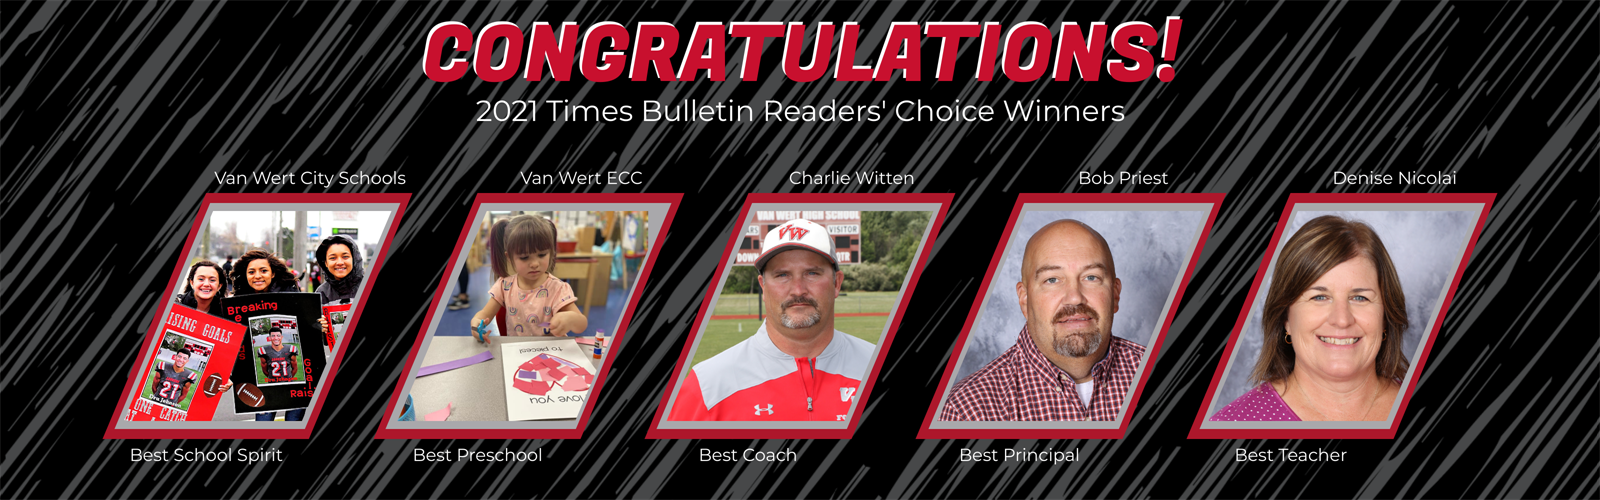 Congratulations Times Bulletin Readers' Choice Winners: Van Wert City Schools, Van Wert ECC, Charlie Witten, Bob Priest, Denise Nicoali